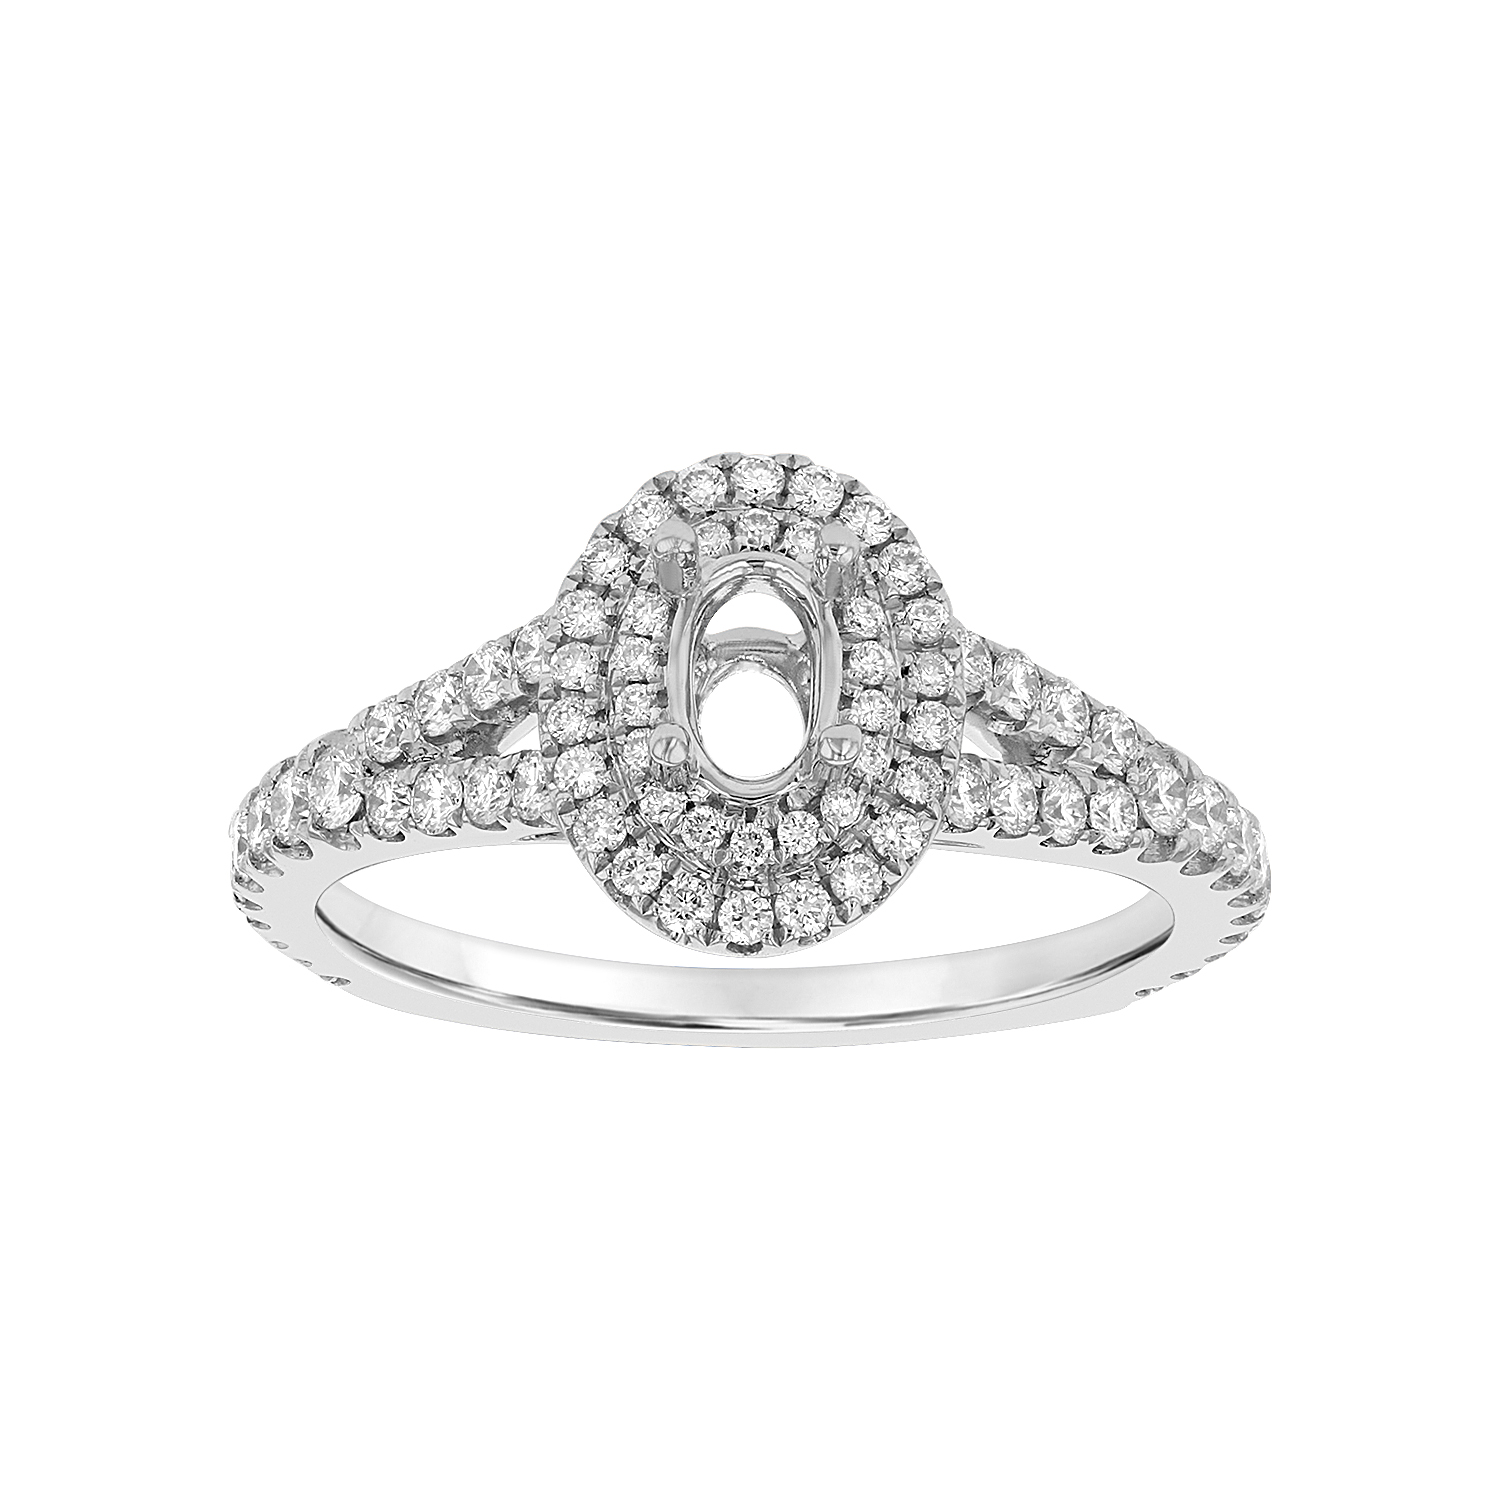 View 0.58ctw Diamond Semi Mount Engagement Ring in 18k White Gold